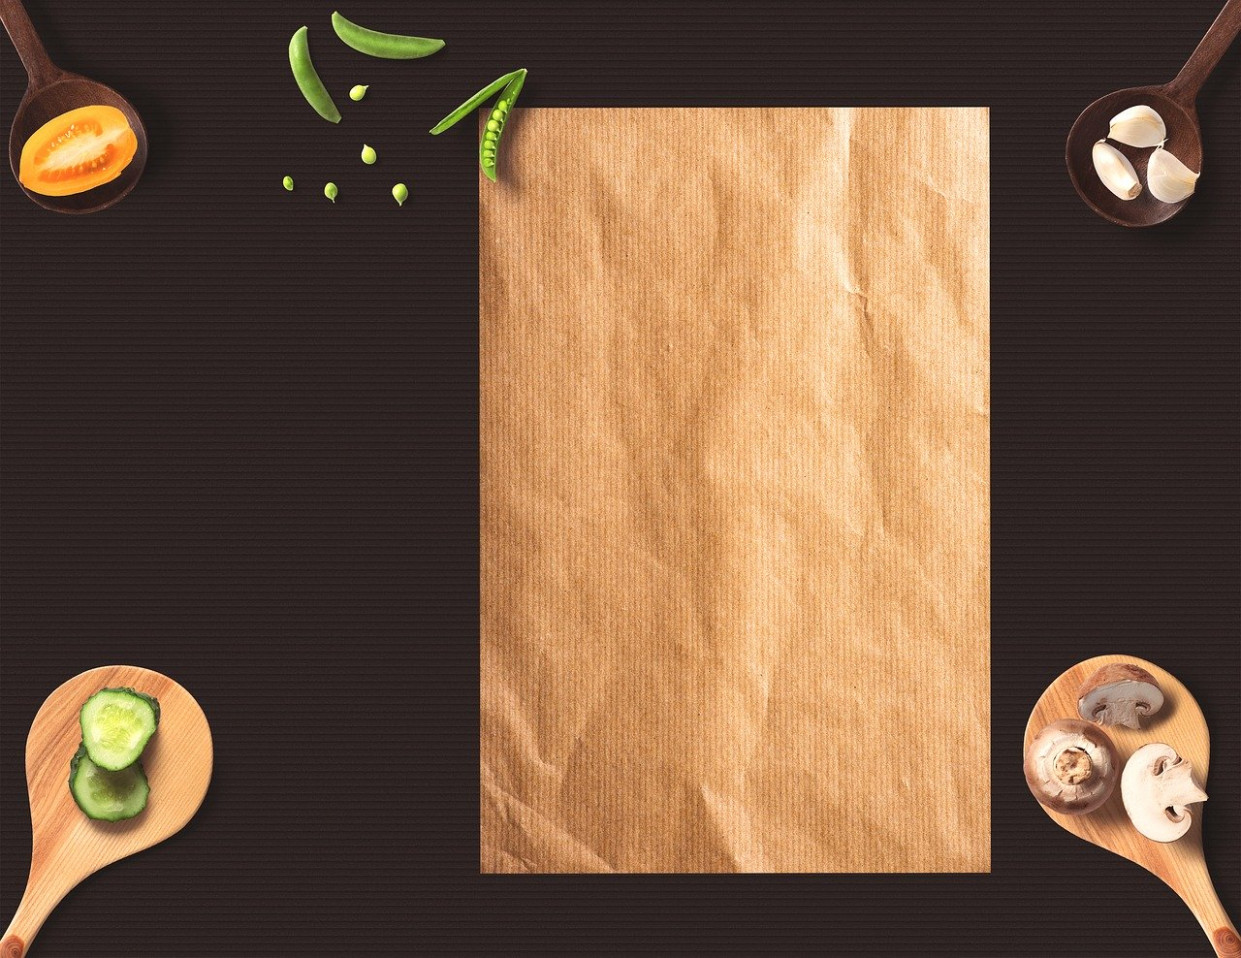 Menu, Paper, Background, Wooden Spoon - recipes good food